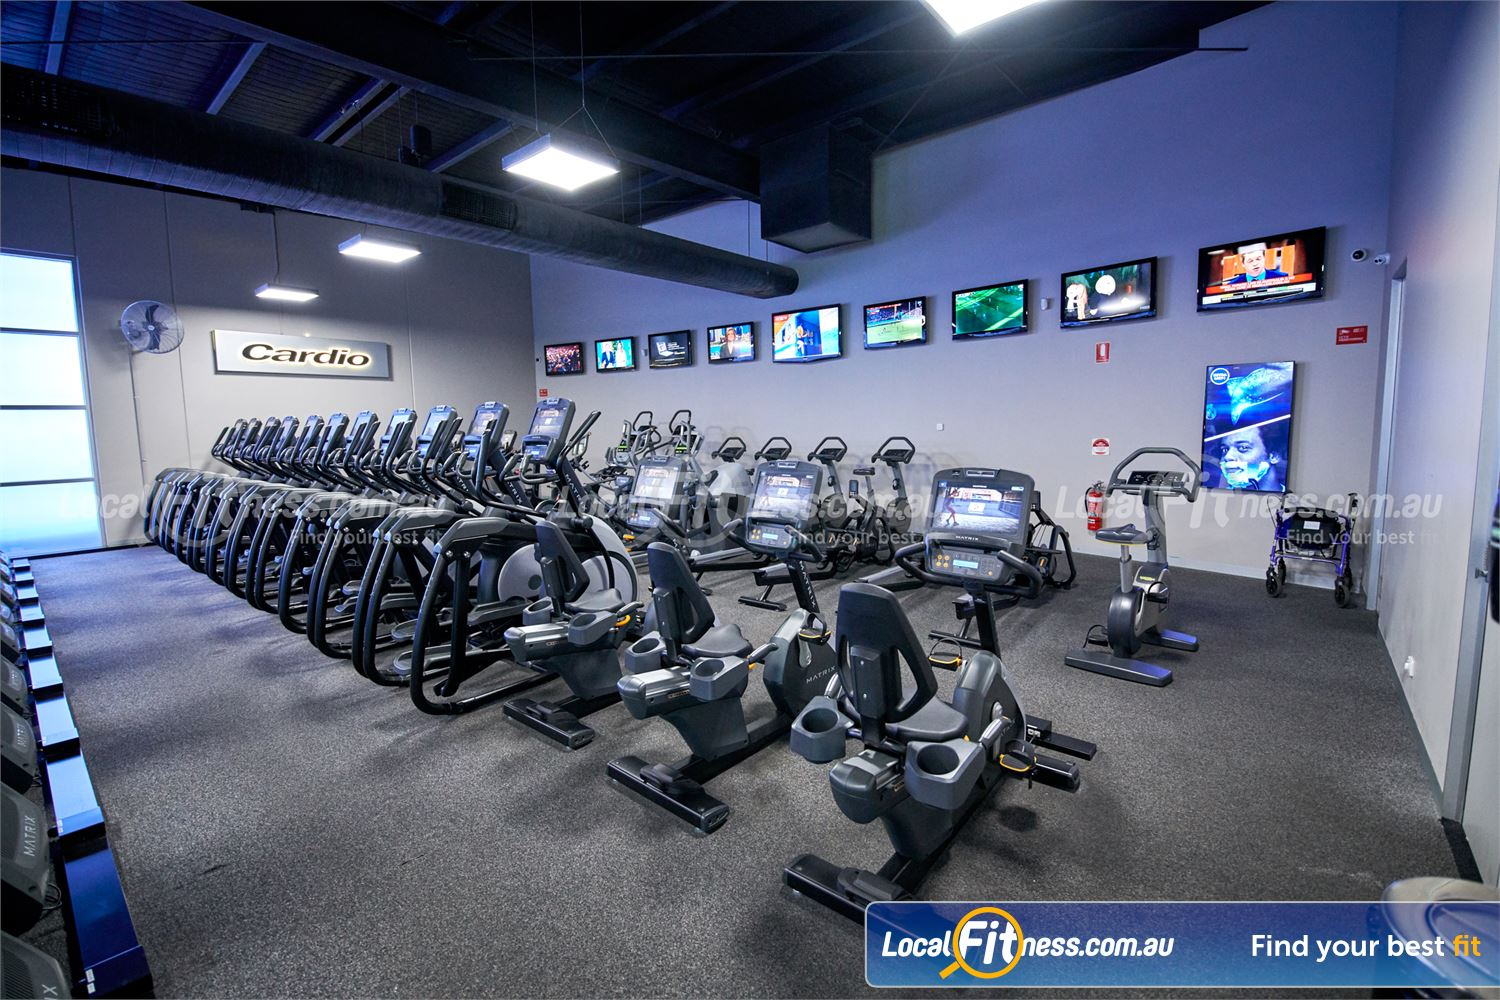 Fitness First Glen Waverley Rows of cardio machines including cross-trainers and recumbent cycle bikes.